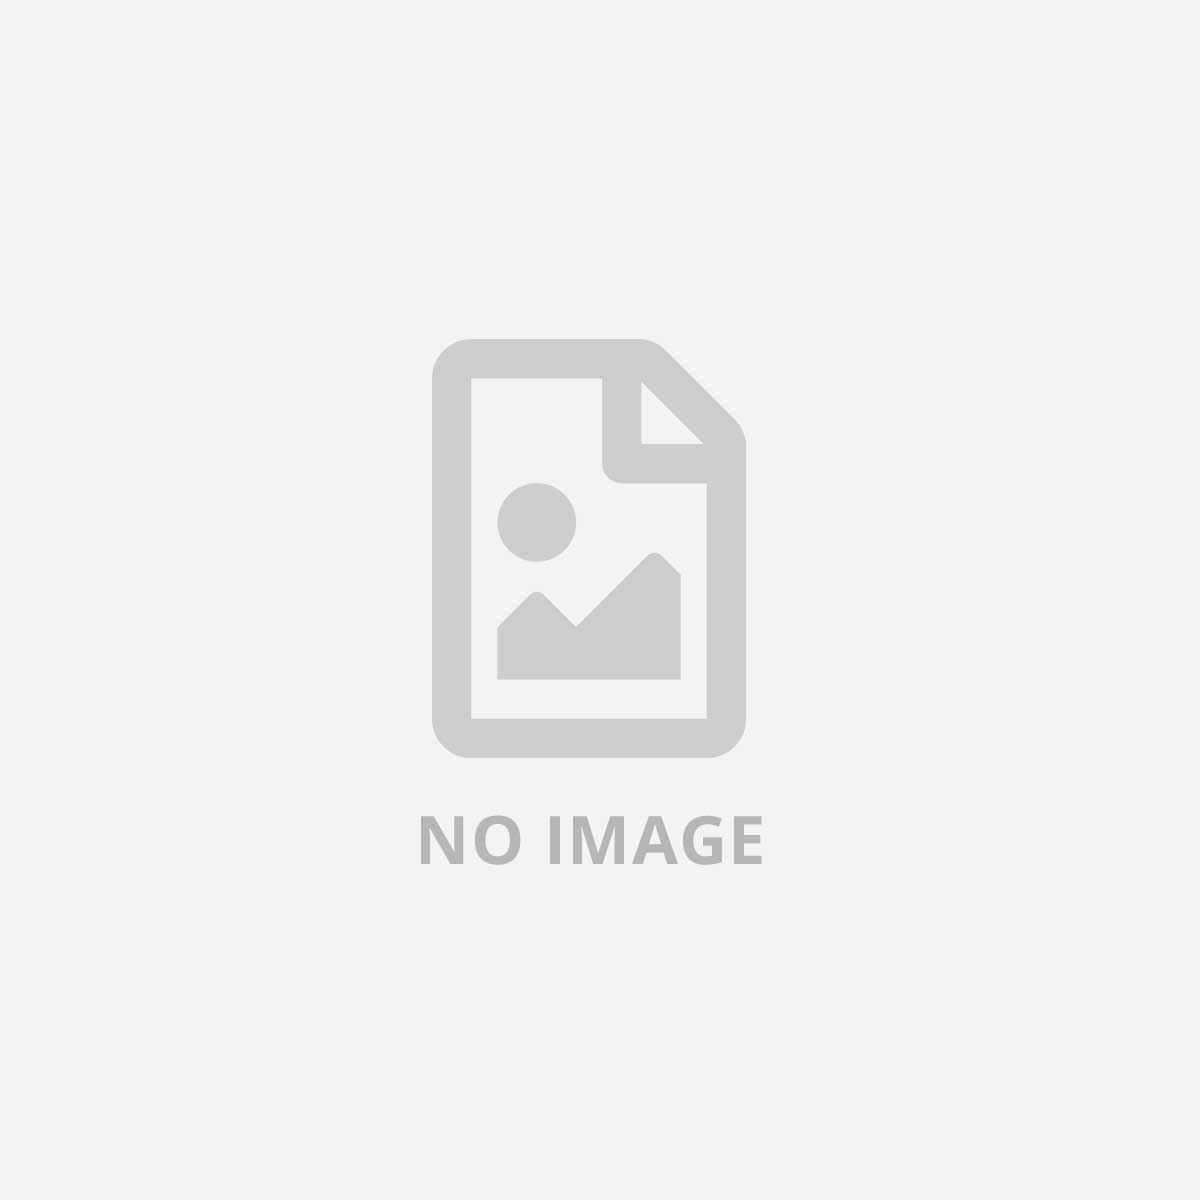 BLACK AND DECKER BLACKDECKER BDCDD12K-QW